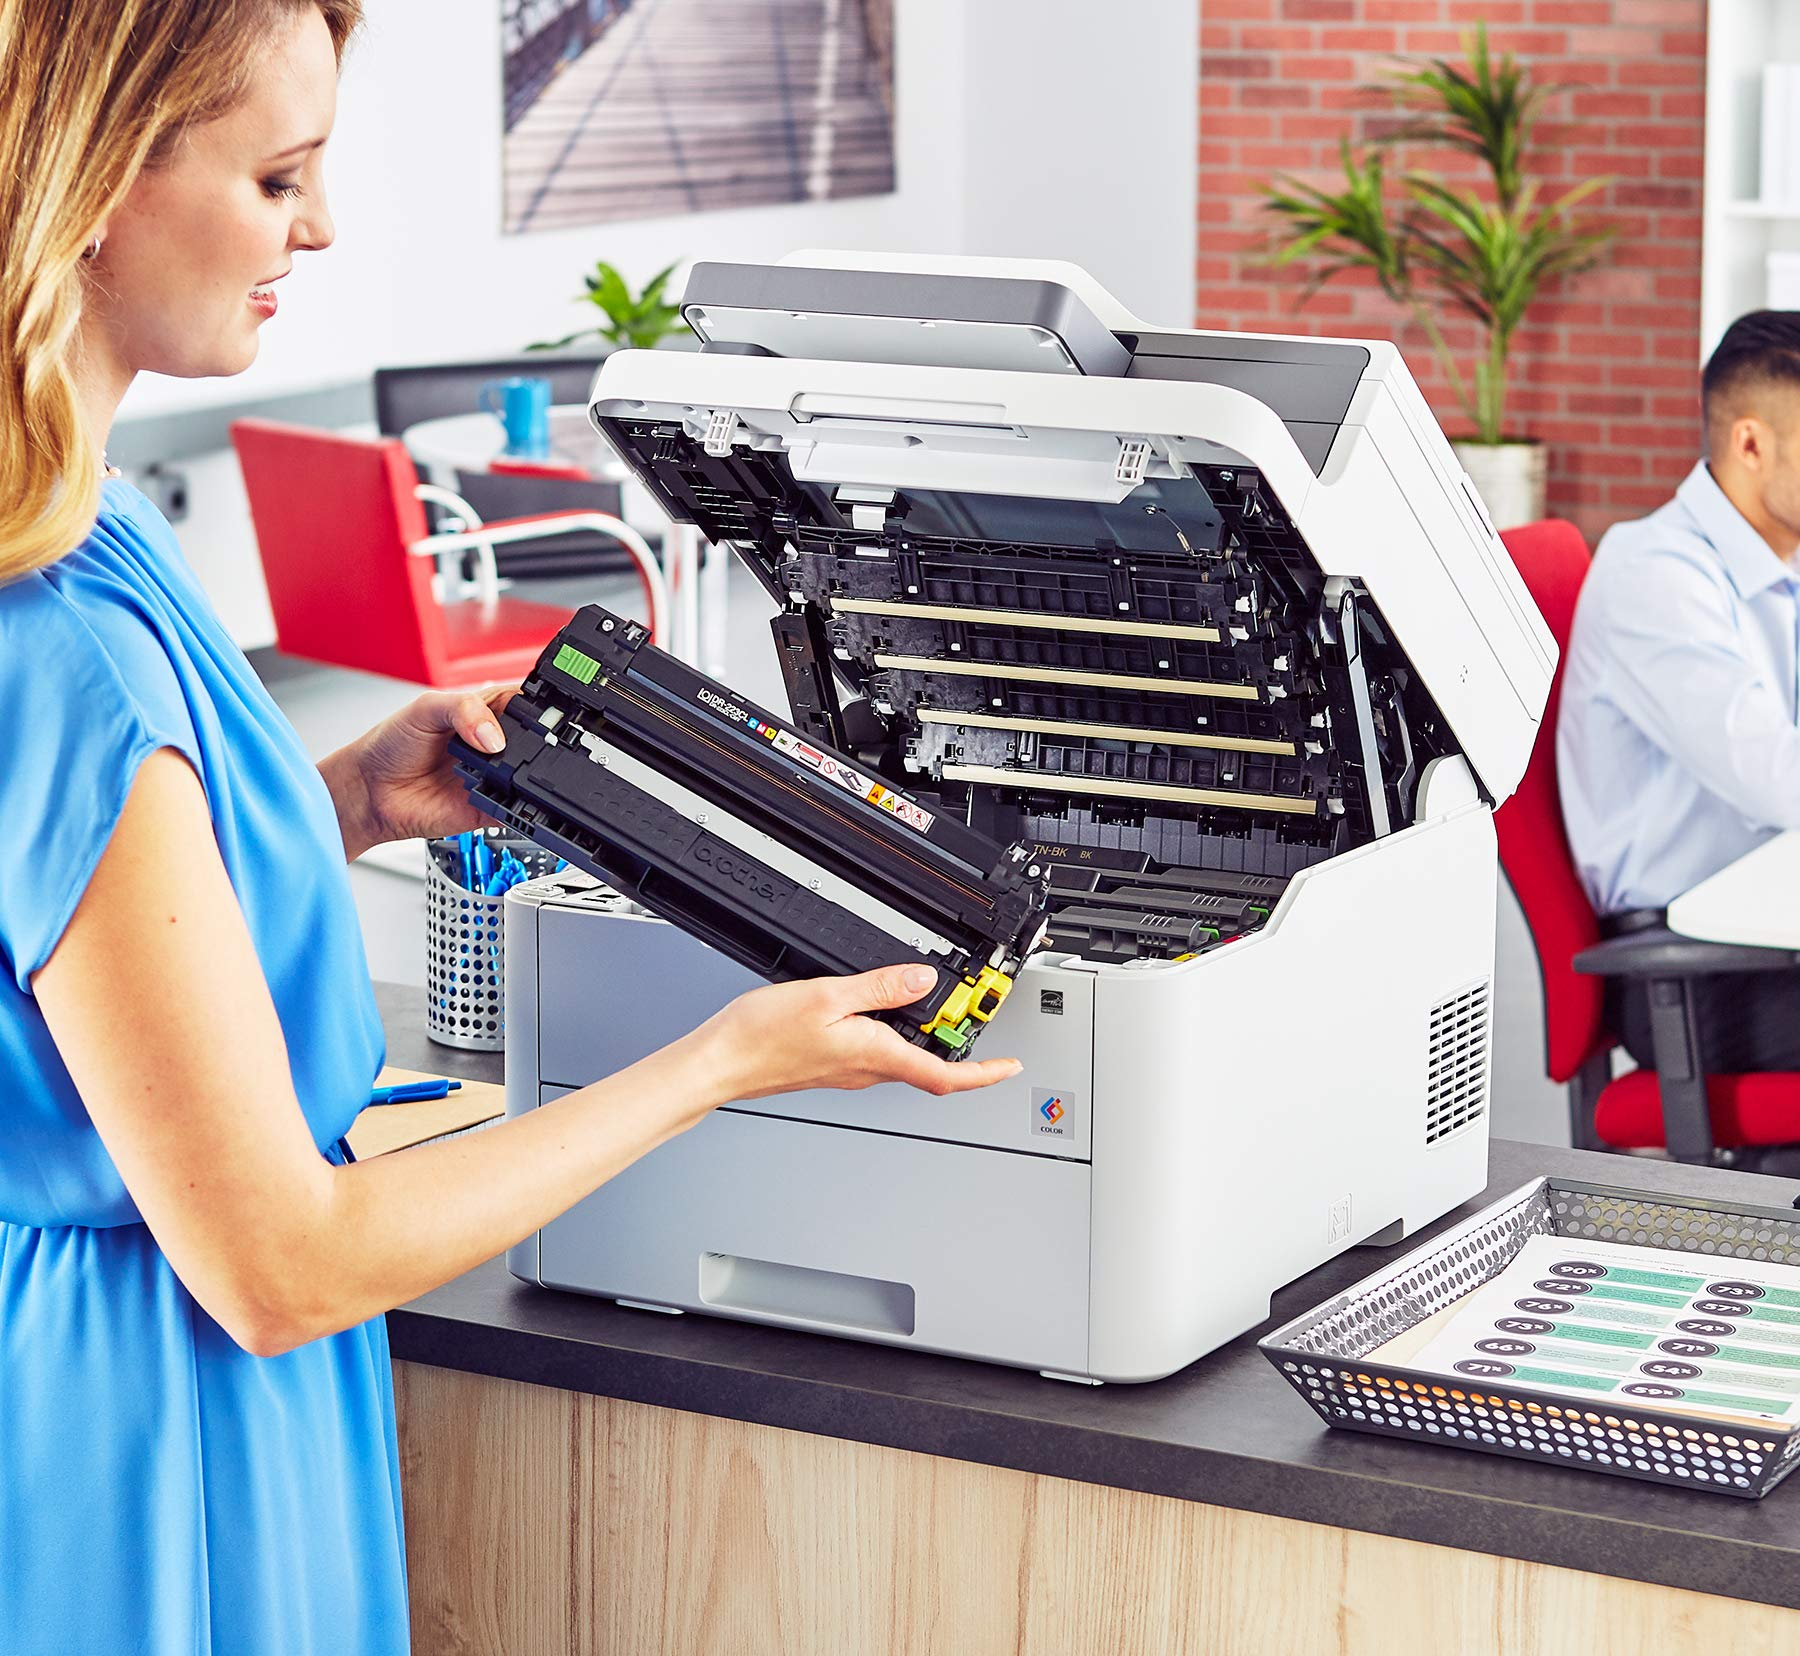 Brother MFC-L3710CW Compact Digital Color All-in-One Printer Providing Laser Printer Quality Results with Wireless, Amazon Dash Replenishment Enabled by Brother (Image #8)